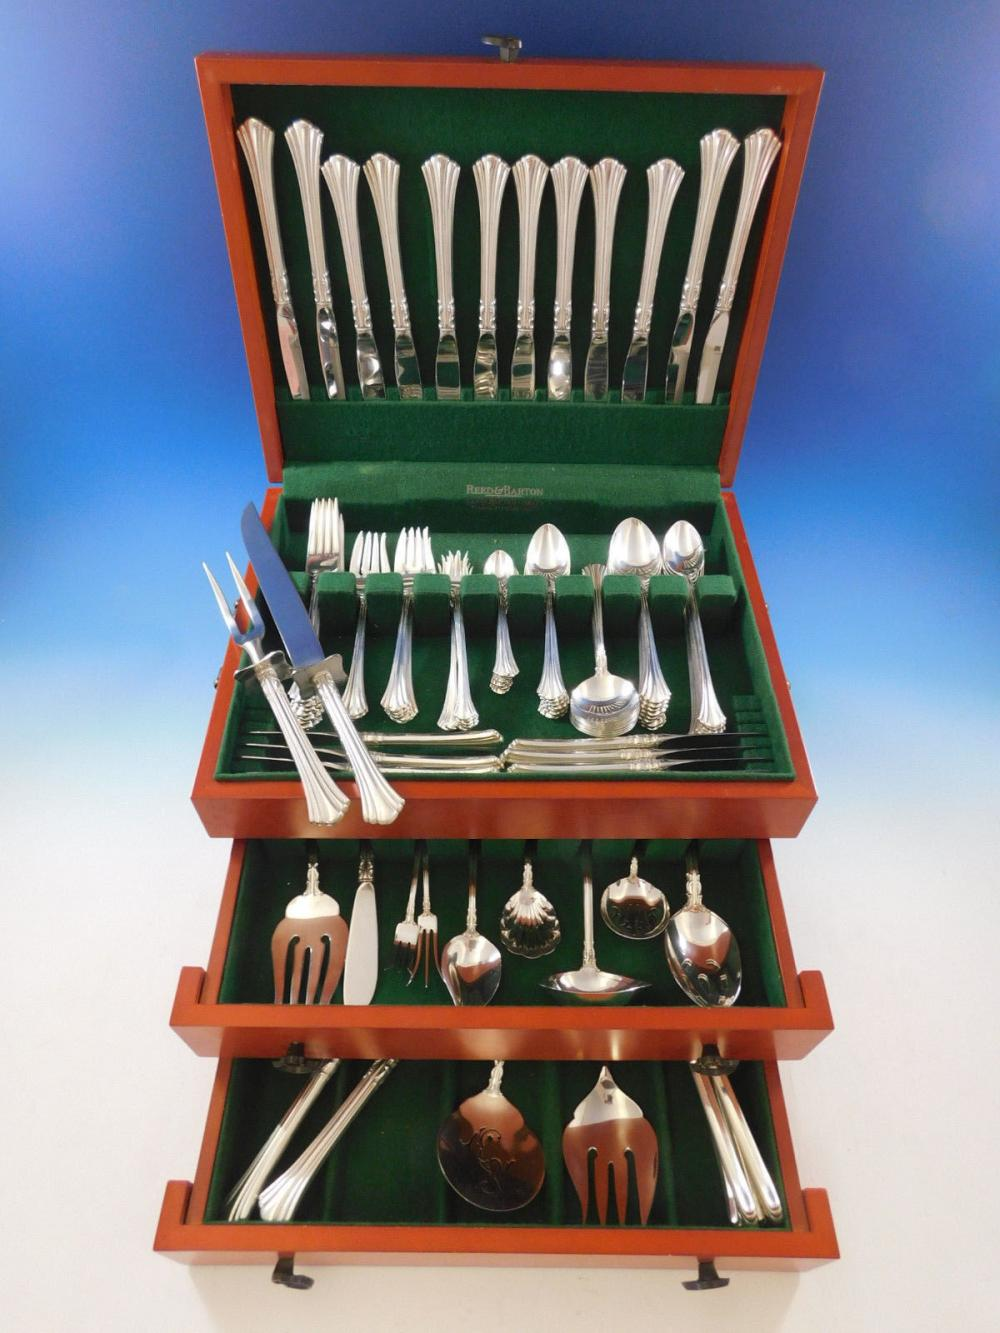 Sterling Silver Flatware Reed And Barton Eighteenth Century Salad Fork